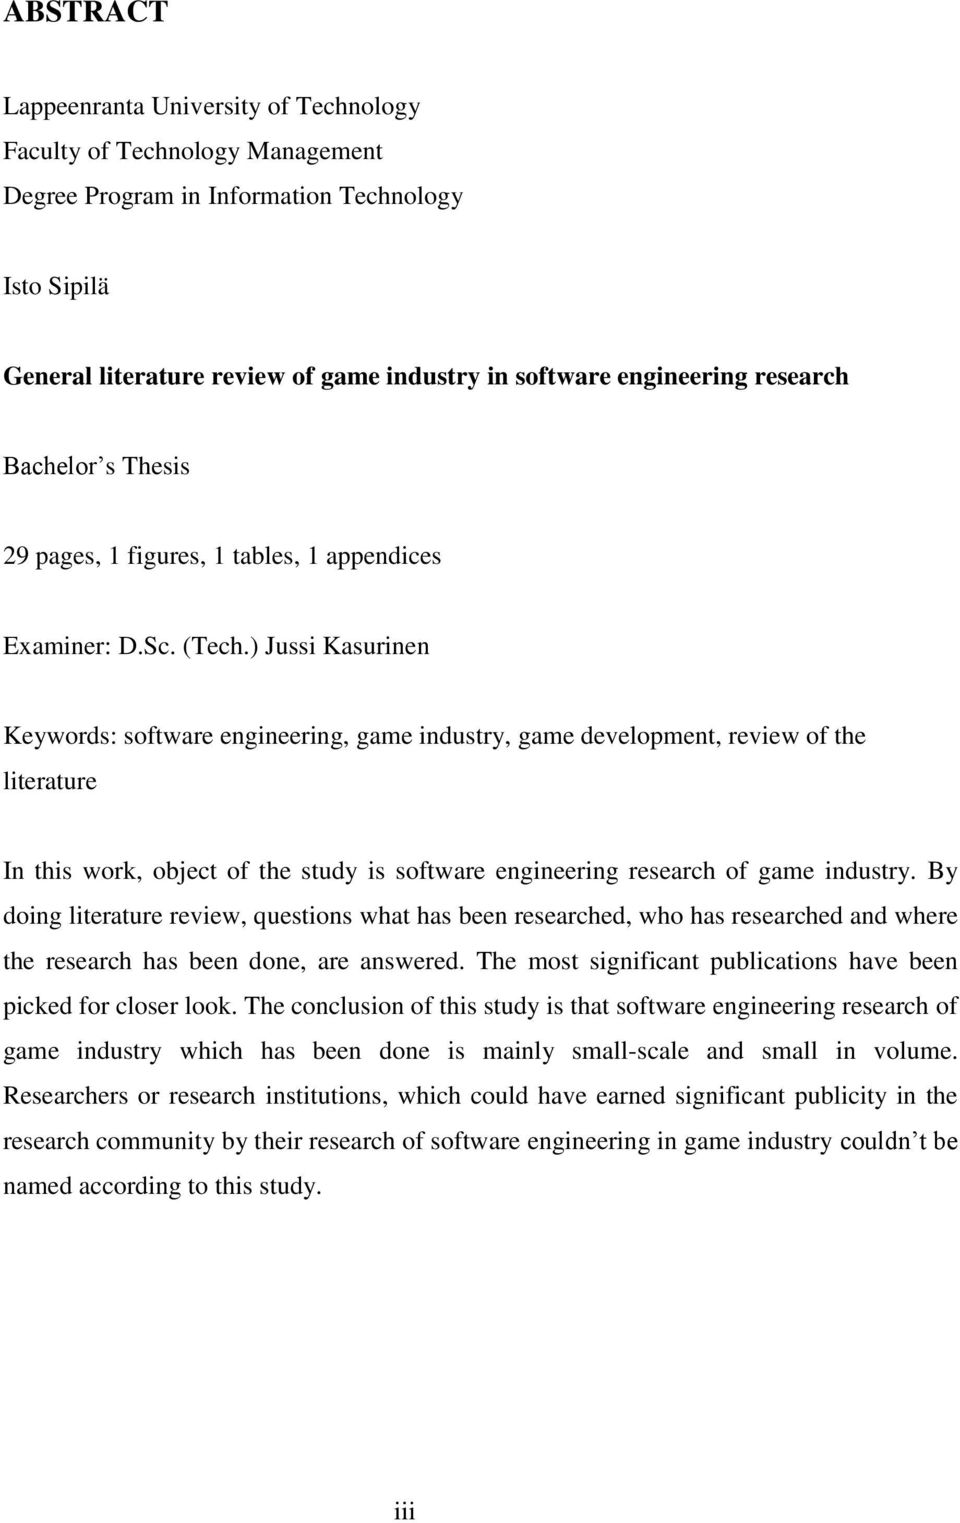 ) Jussi Kasurinen Keywords: software engineering, game industry, game development, review of the literature In this work, object of the study is software engineering research of game industry.